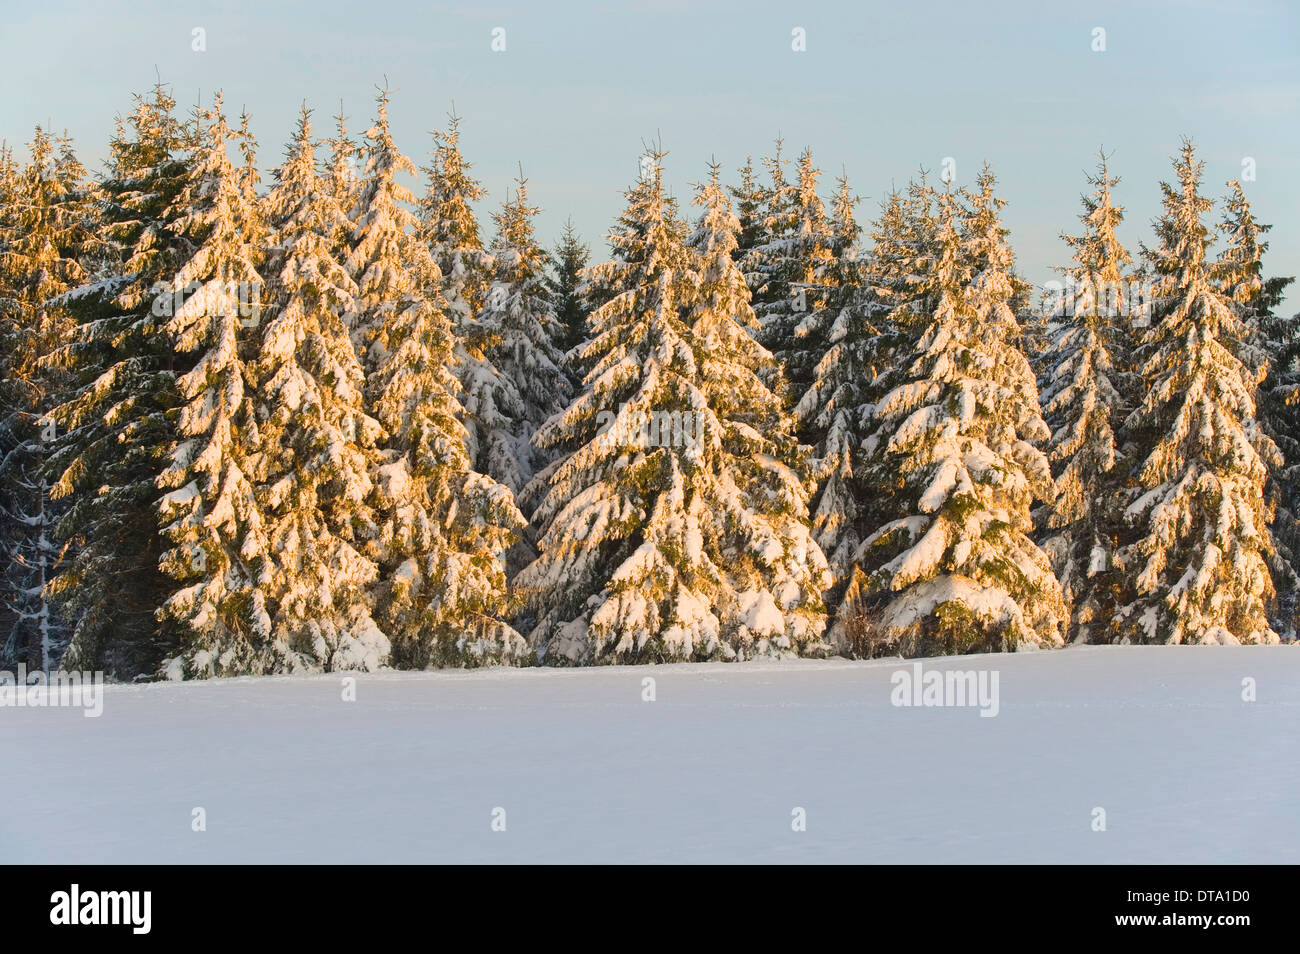 Norway spruce (Picea abies) covered with snow in the evening light, Thuringia, Thuringian Forest, Germany - Stock Image